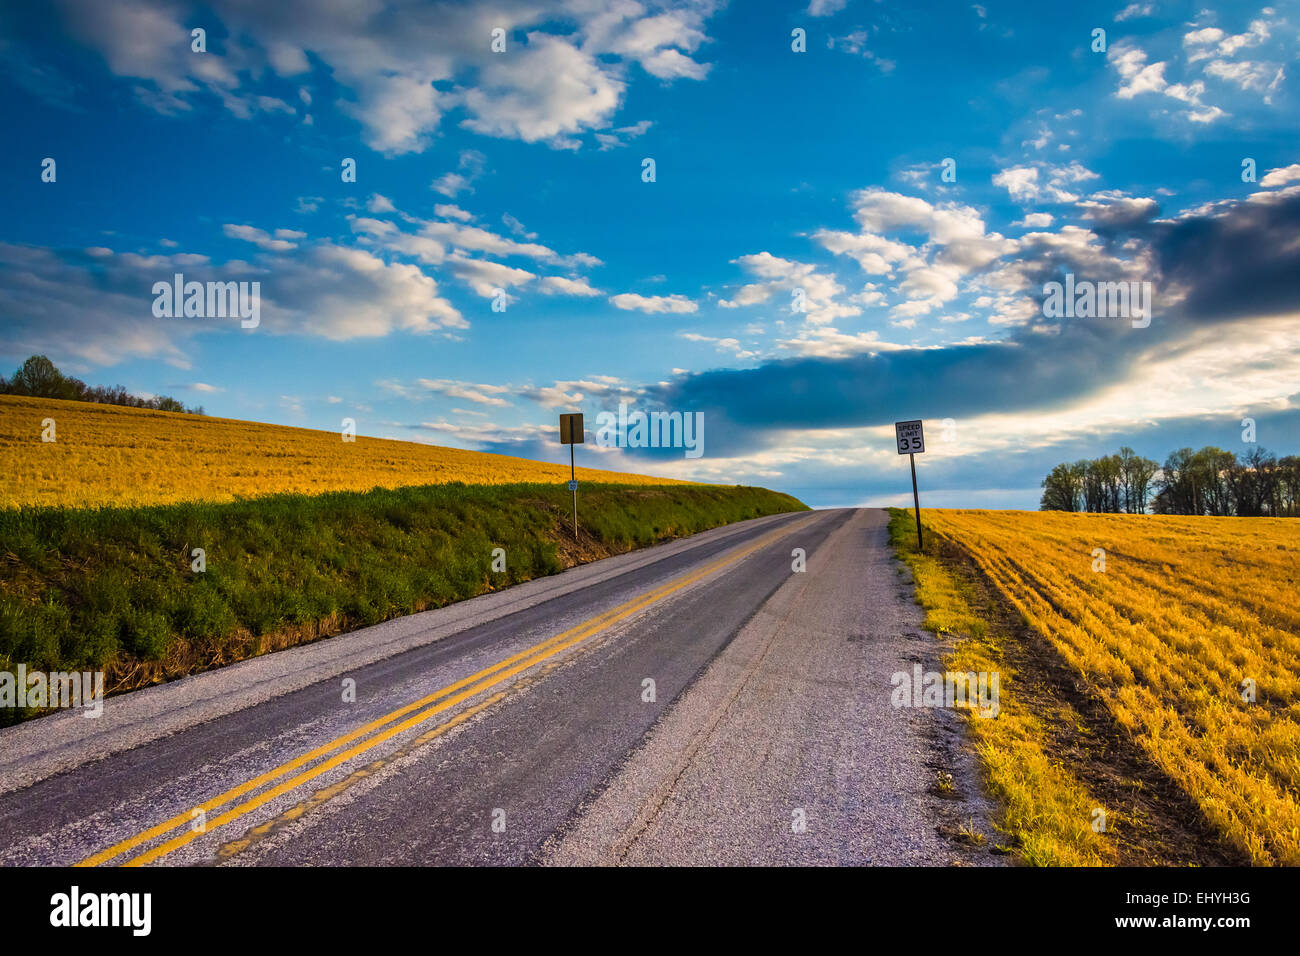 Country road in rural York County, Pennsylvania. - Stock Image